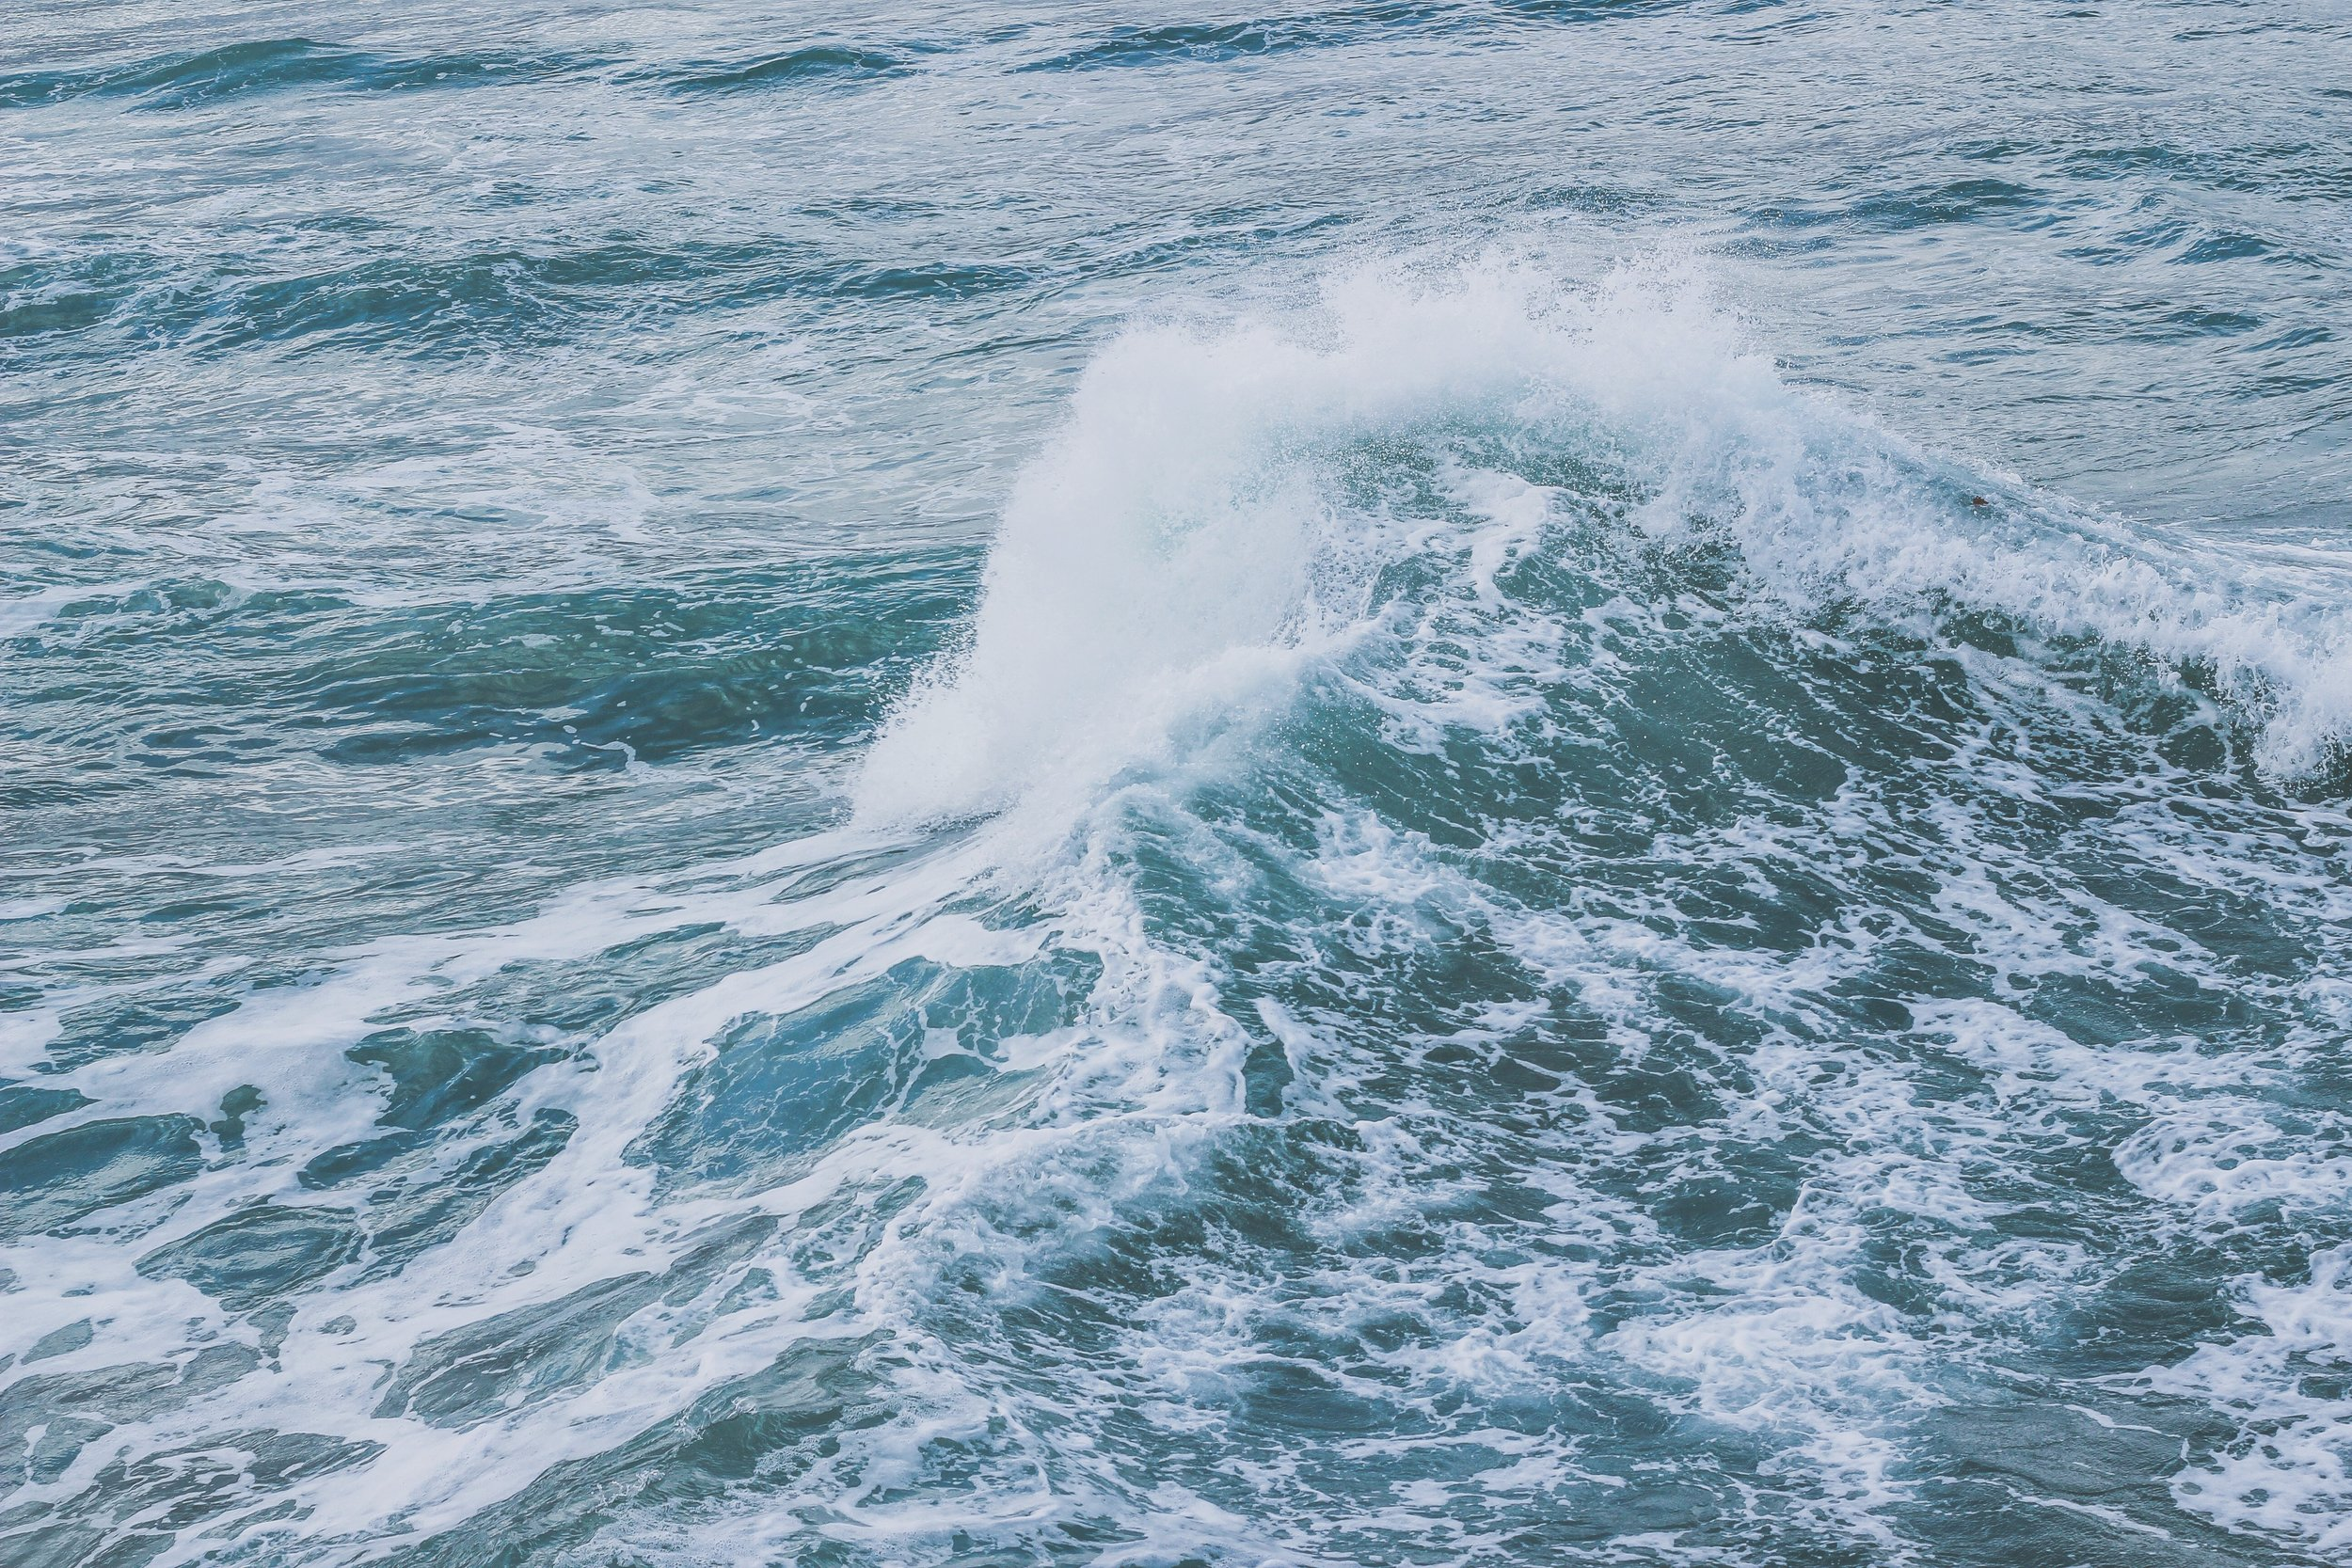 Splash of Refreshing Waters for Depression - Guest Blog by Aimee Caverly, Blogger & Mental Health Advocate